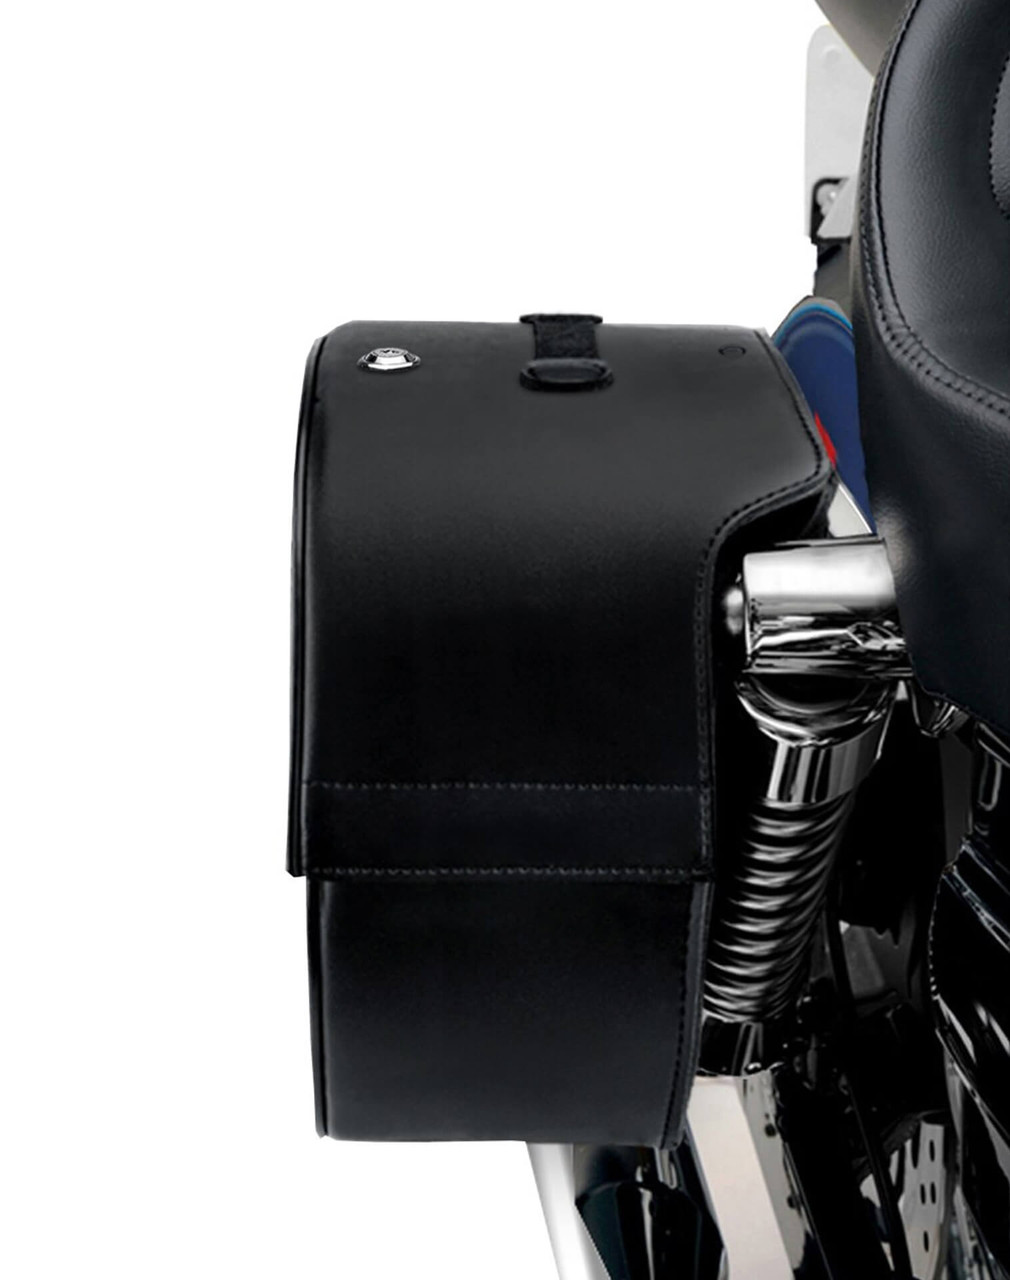 Viking Spear Large Shock Cutout Hard Leather Large Motorcycle Saddlebags For Harley Sportster 1200 Low XL1200L Shock Cutout View